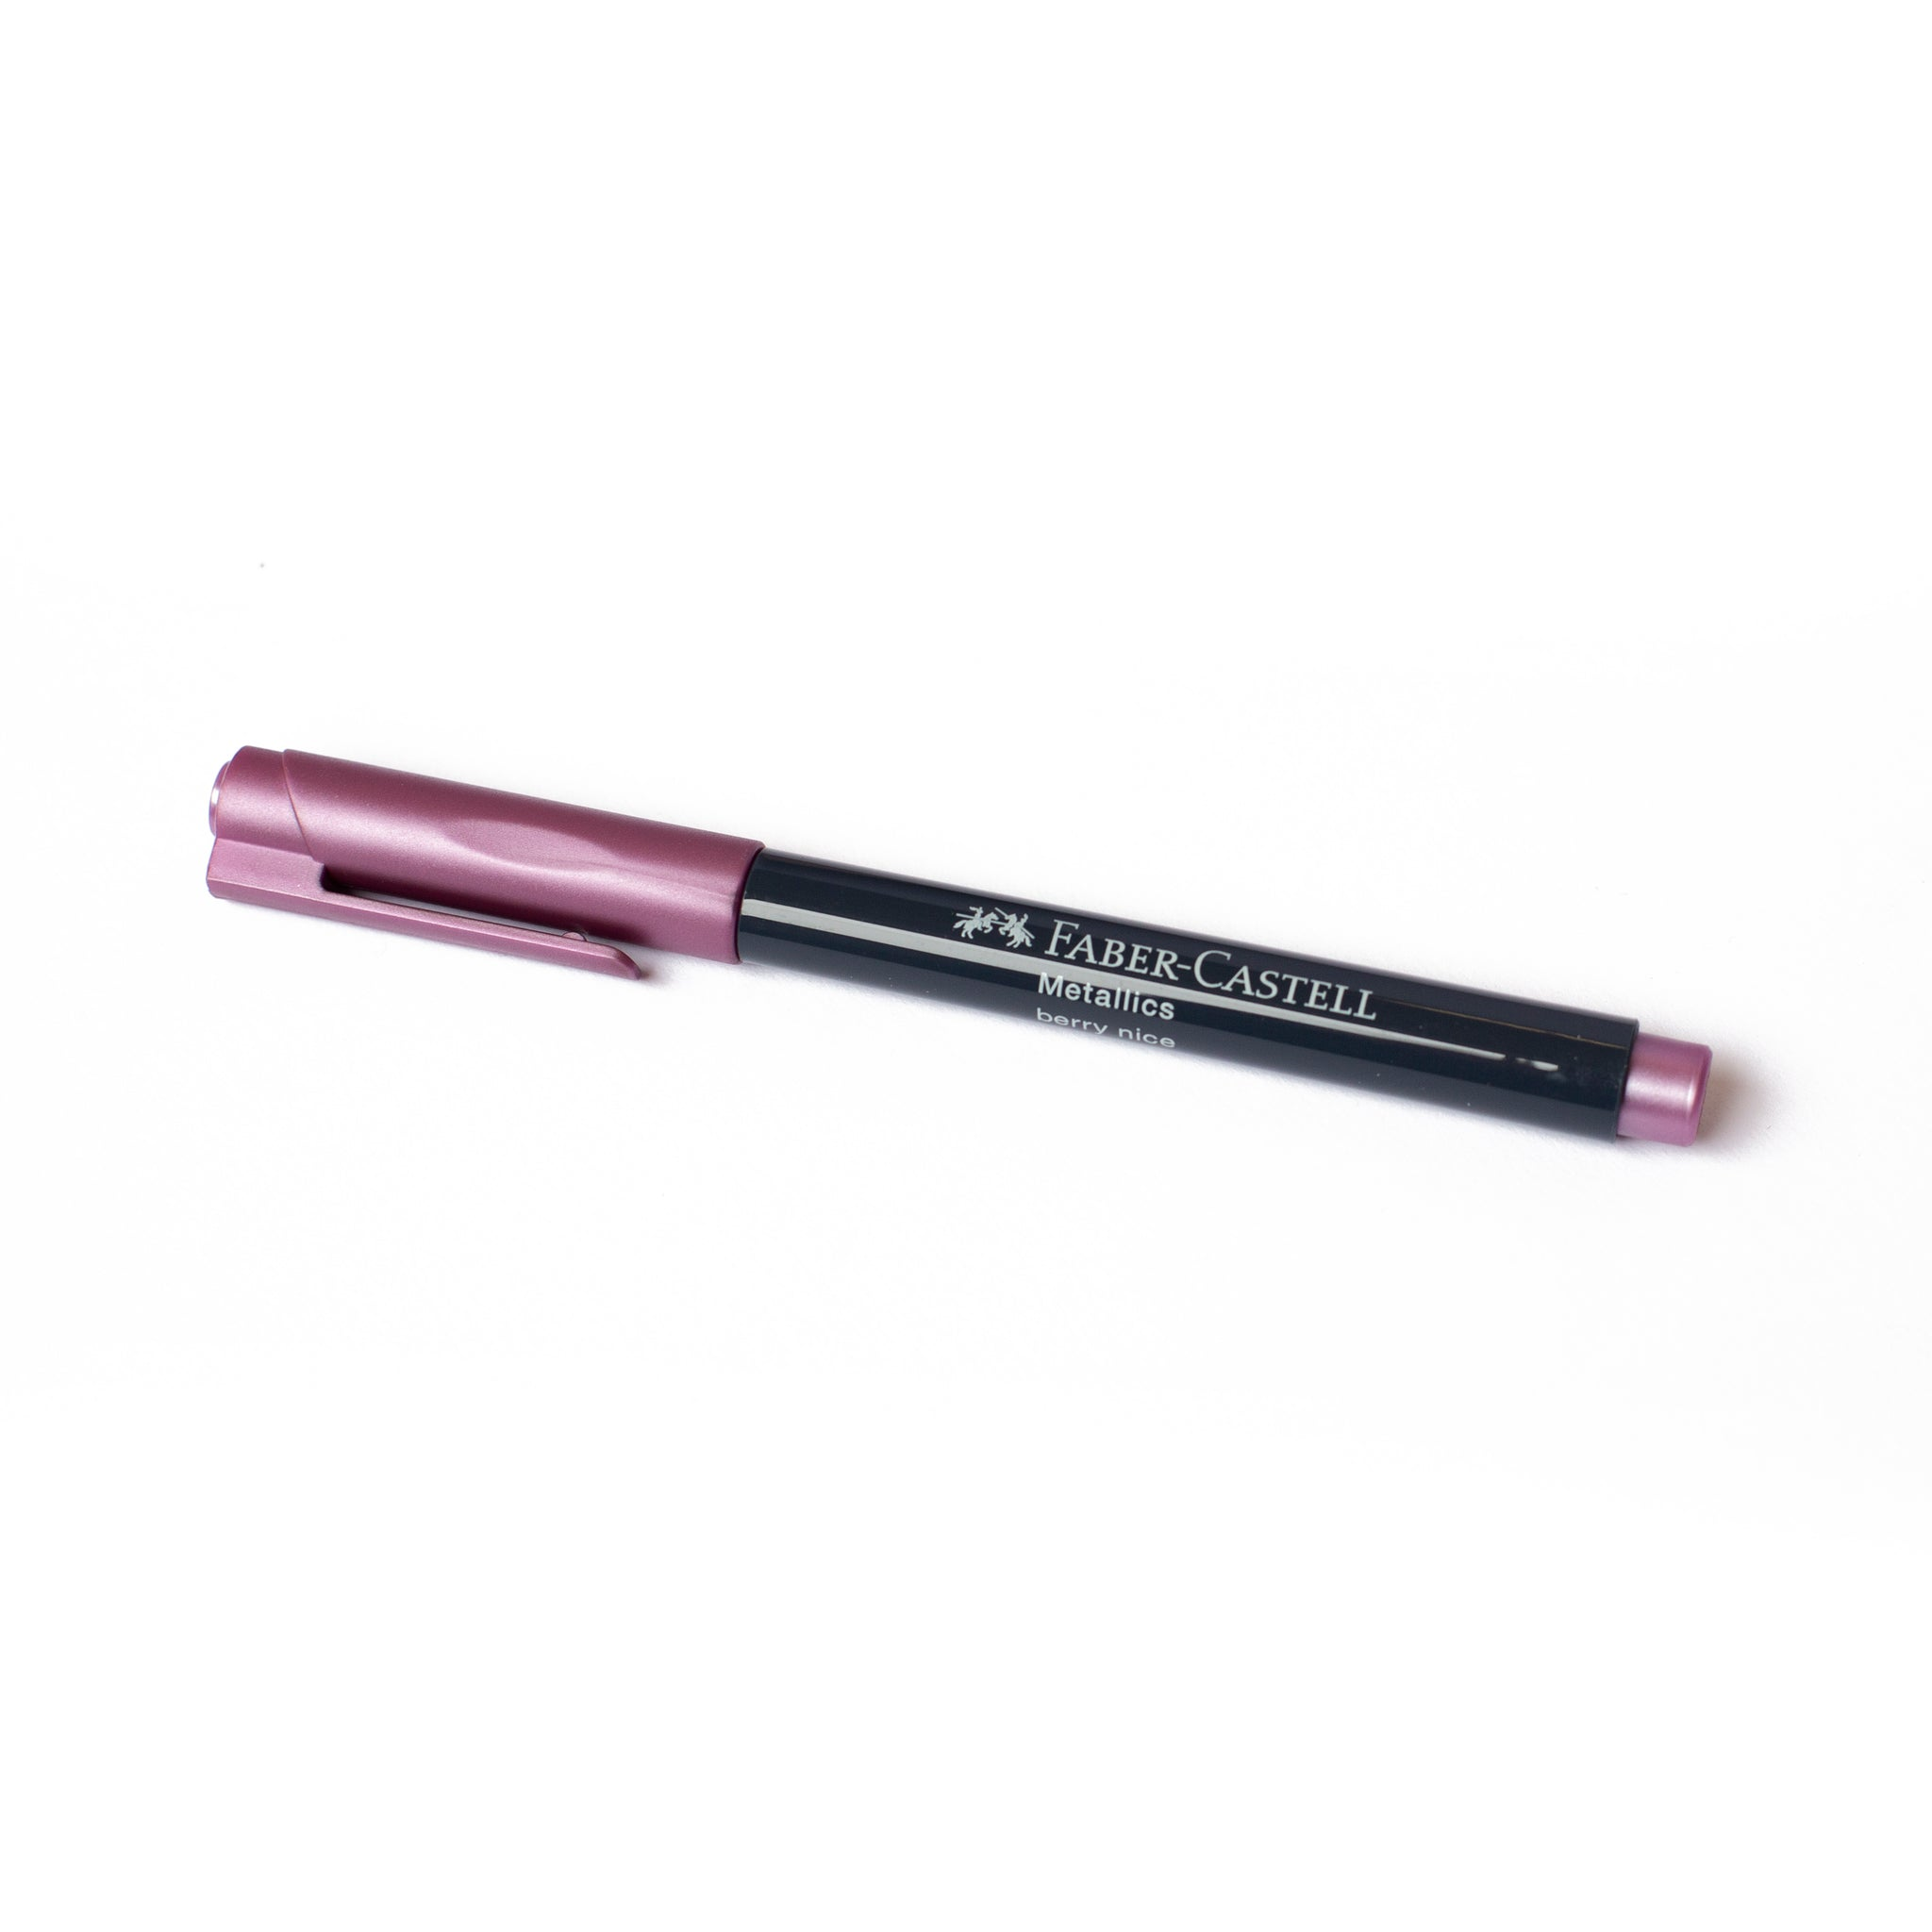 Pitt Artist Pen - Metallic Berry